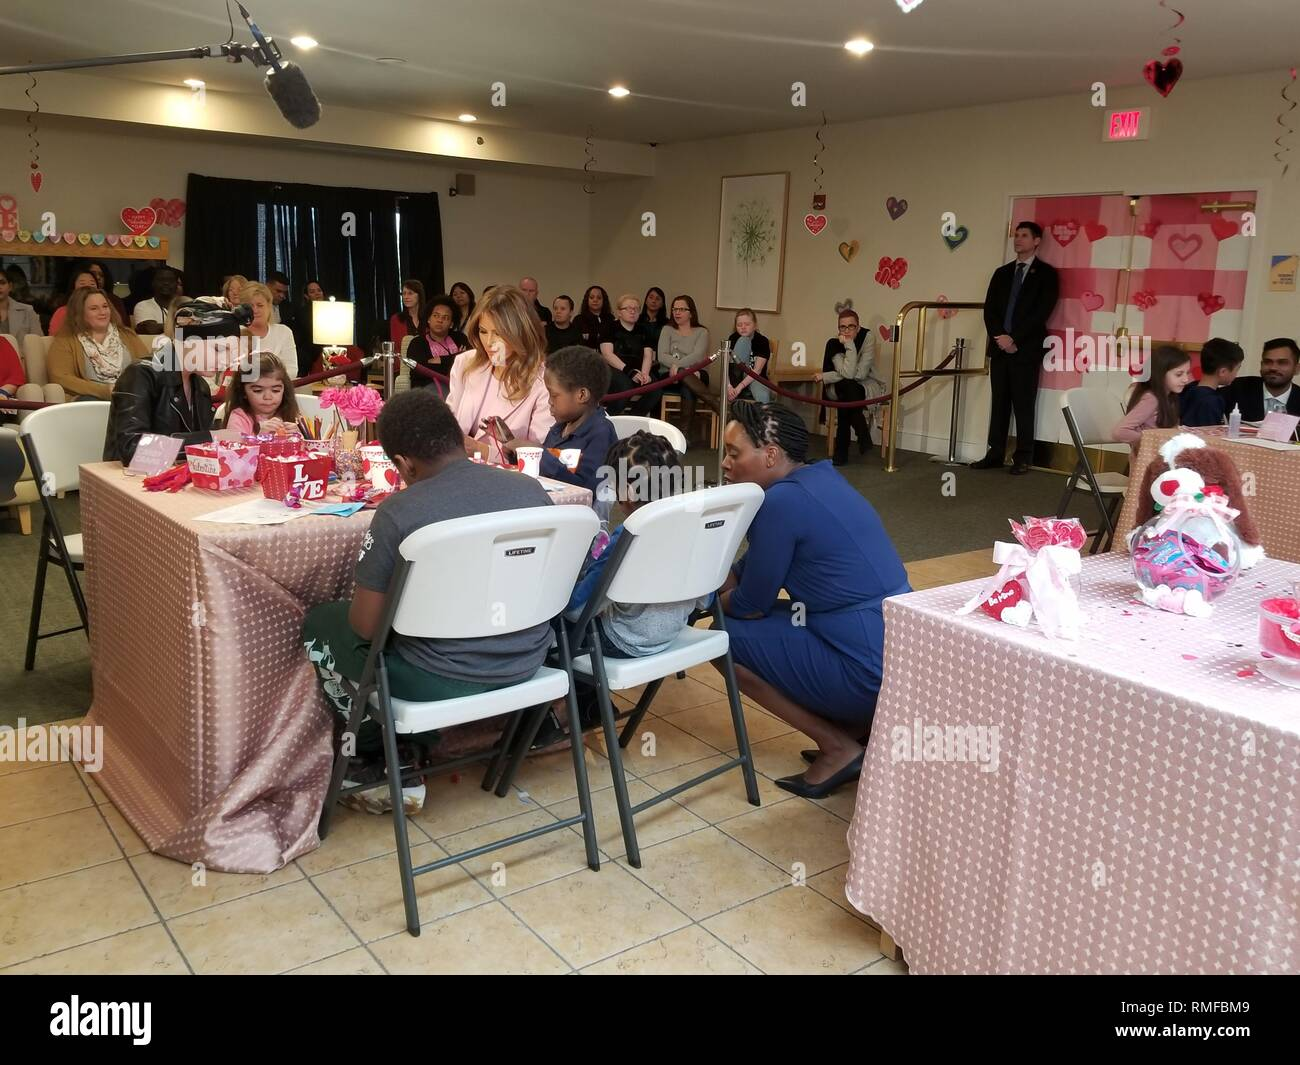 BETHESDA, MD FEBRUARY 14: Dressed in all pink, first lady Melania Trump brought ValentineÕs Day cards to young patients being treated at the ChildrenÕs Inn at the National Institutes of Health. Meet Amani. He is 13 yrs old & just completed his first treatment today.  He gave FLOTUS a necklace inscribed w/ ÒFaithÓ & ÒHopeÓ - two words he keeps close during treatments. He has a bracelet he will wear to match FLOTUS on Thursday February 14, 2019 IN Bethesda, MD  People:  First Lady Melania Trump - Stock Image